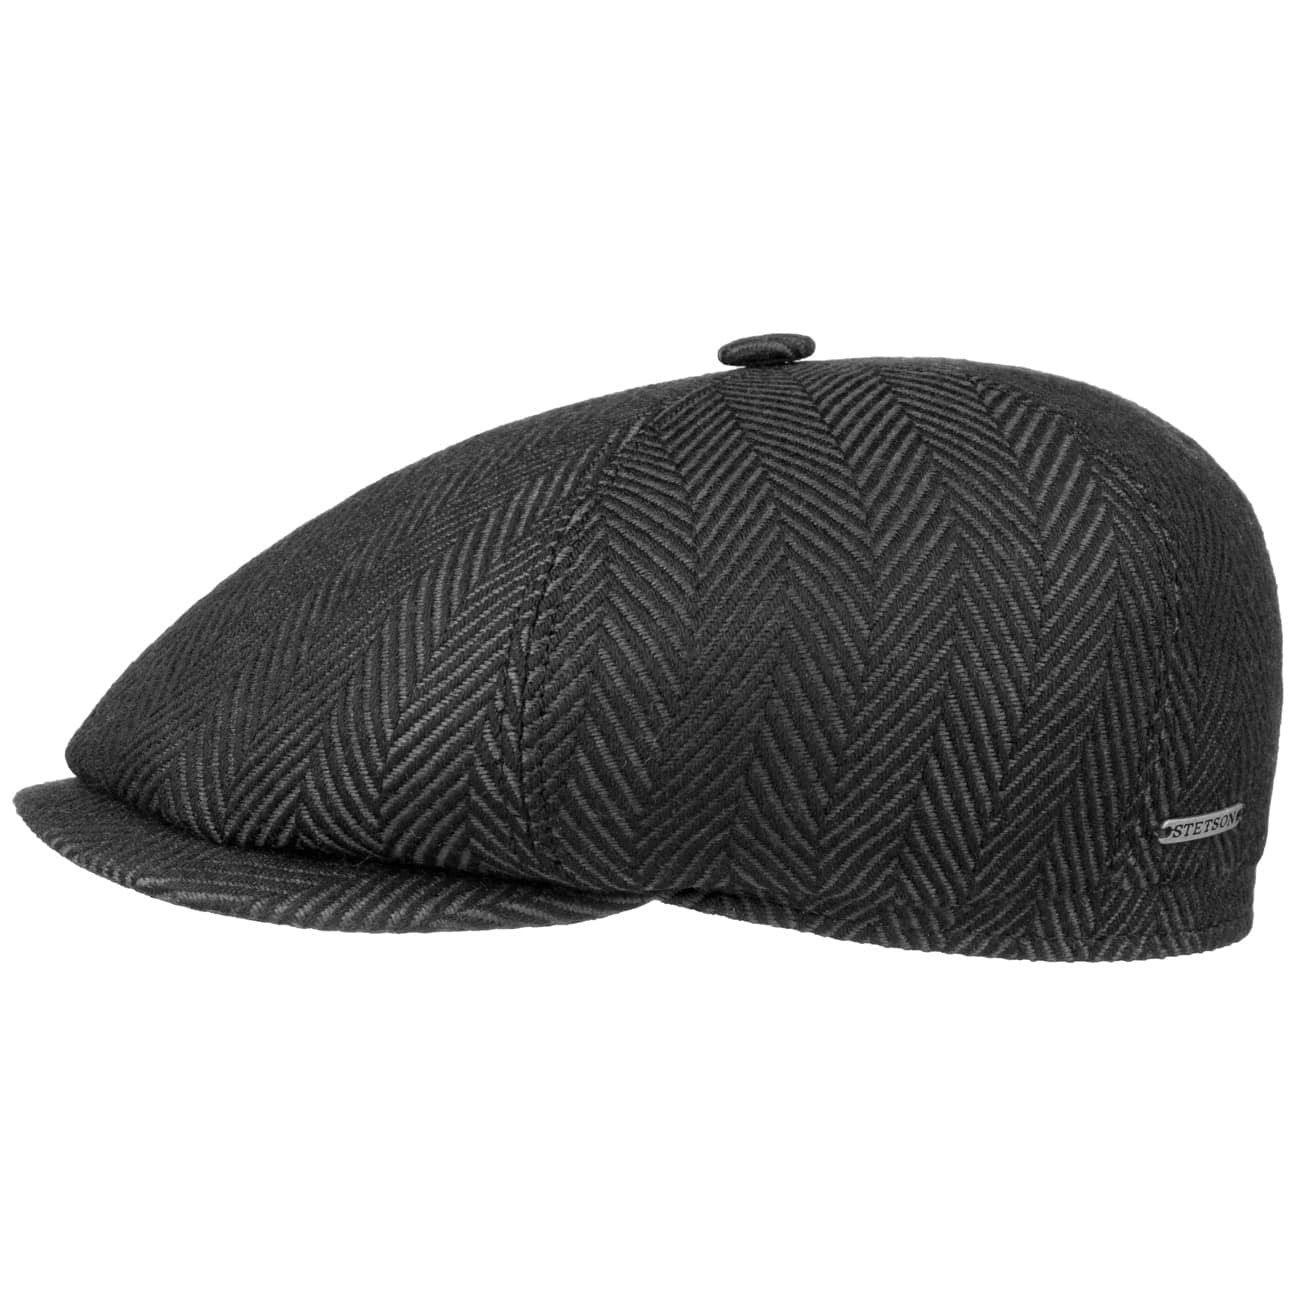 Gorra6-Panel Herringbone by Stetson  gorra de invierno